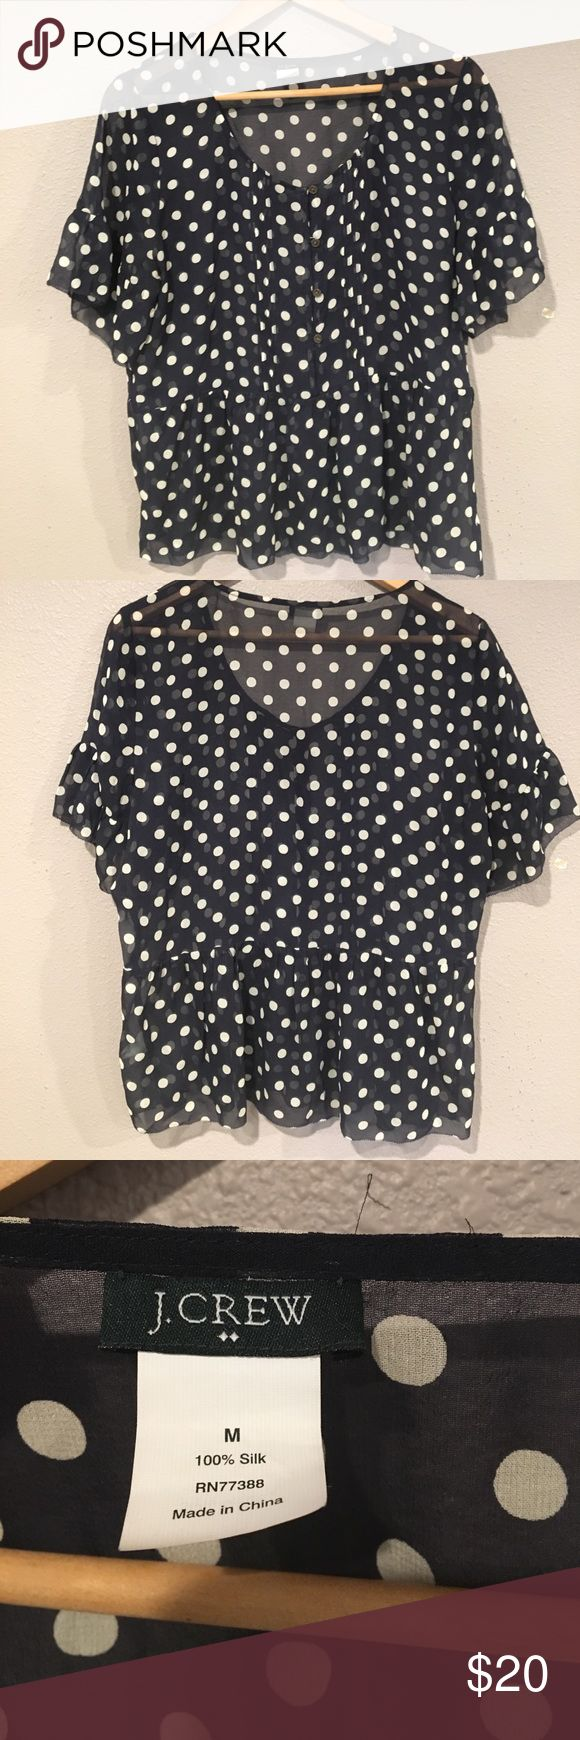 J. Crew navy/cream polka dot sheer blouse. Size M Gorgeous silk navy and cream polka dot blouse by J. Crew. Has been worn but is in overall good condition with lots of life left. Meant to be loose fitting with wide arm and room to spare in torso. J. Crew Tops Blouses